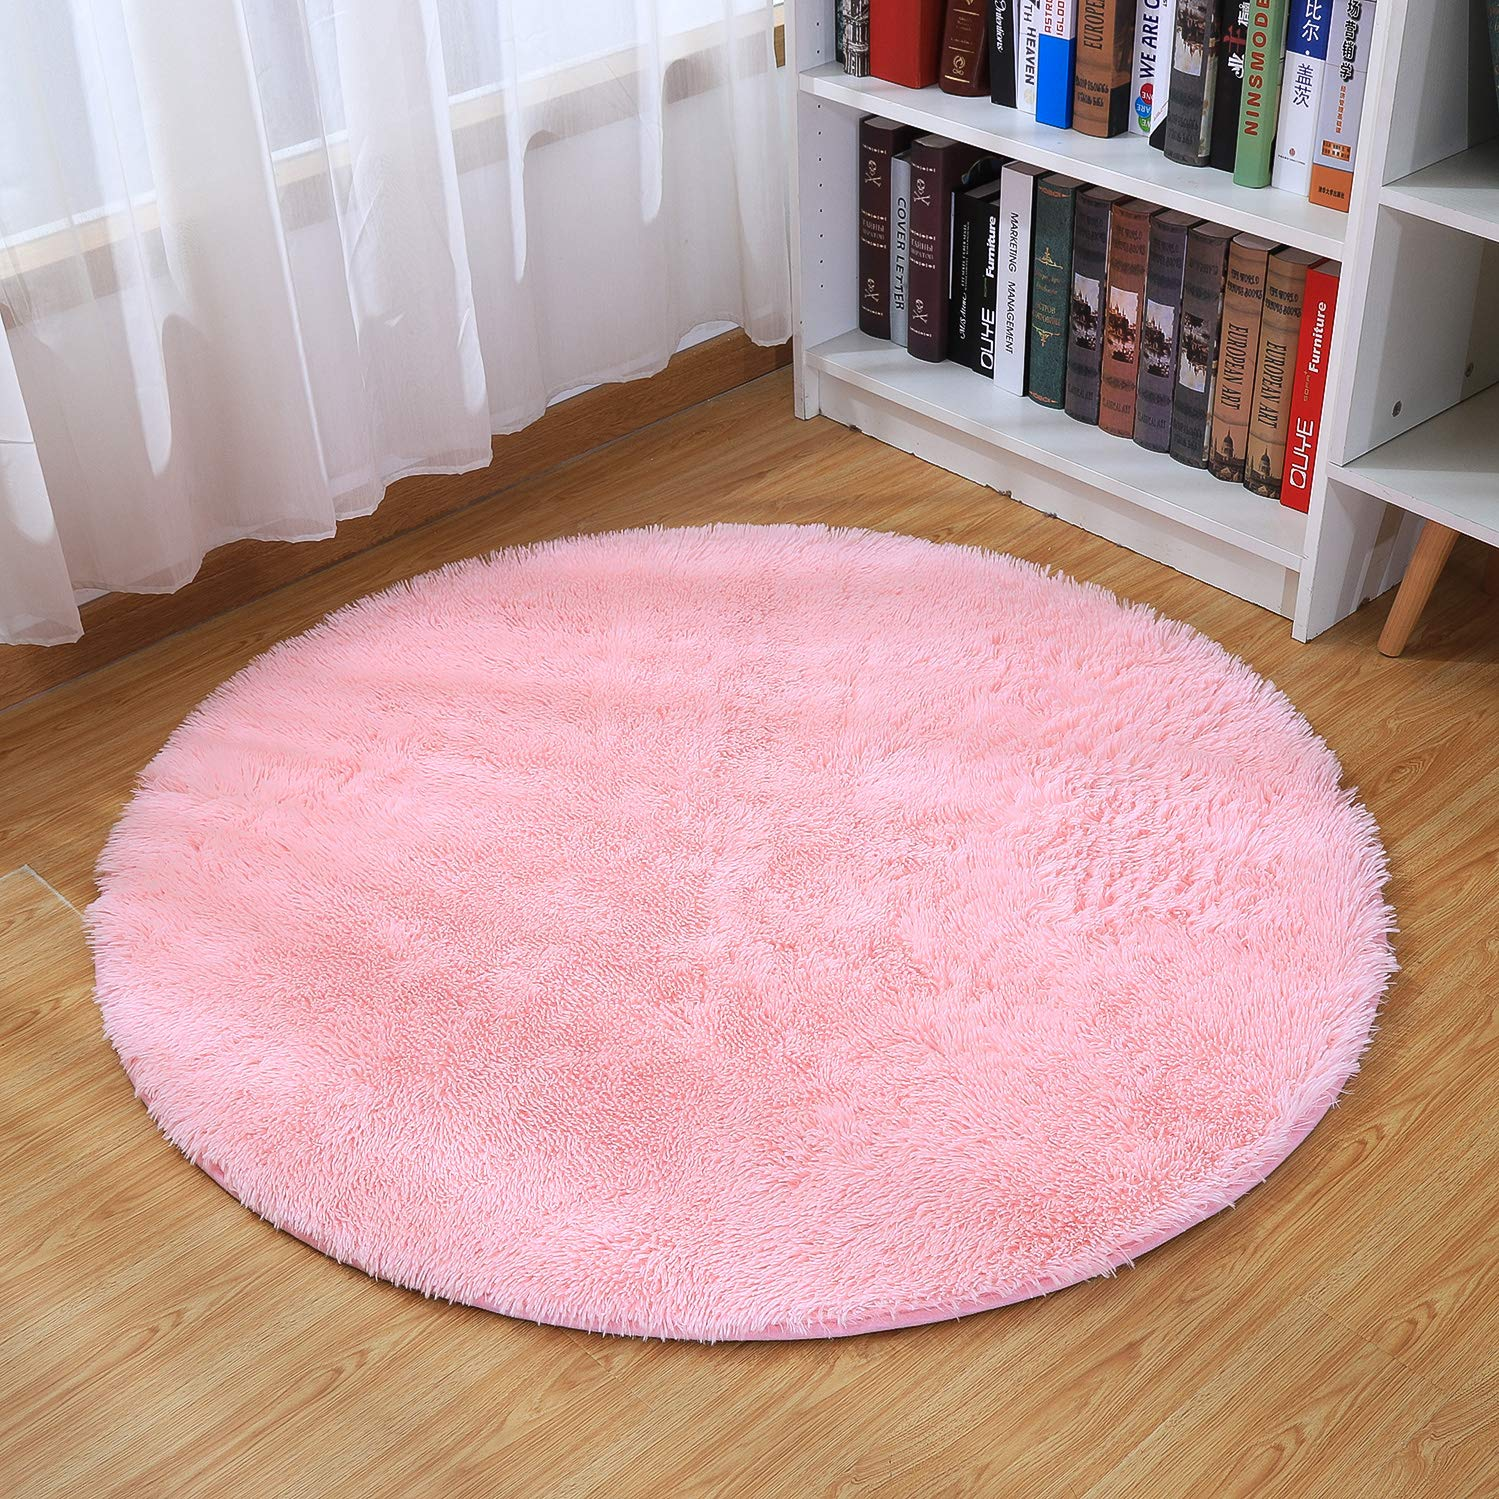 Super Soft Area Rug, Daluo New Arrivl Thick Anti-Skid Fluffy Round Children Area Rug for Living Room Bedroom Kids Room Nursery, 4-Feet (Pink)